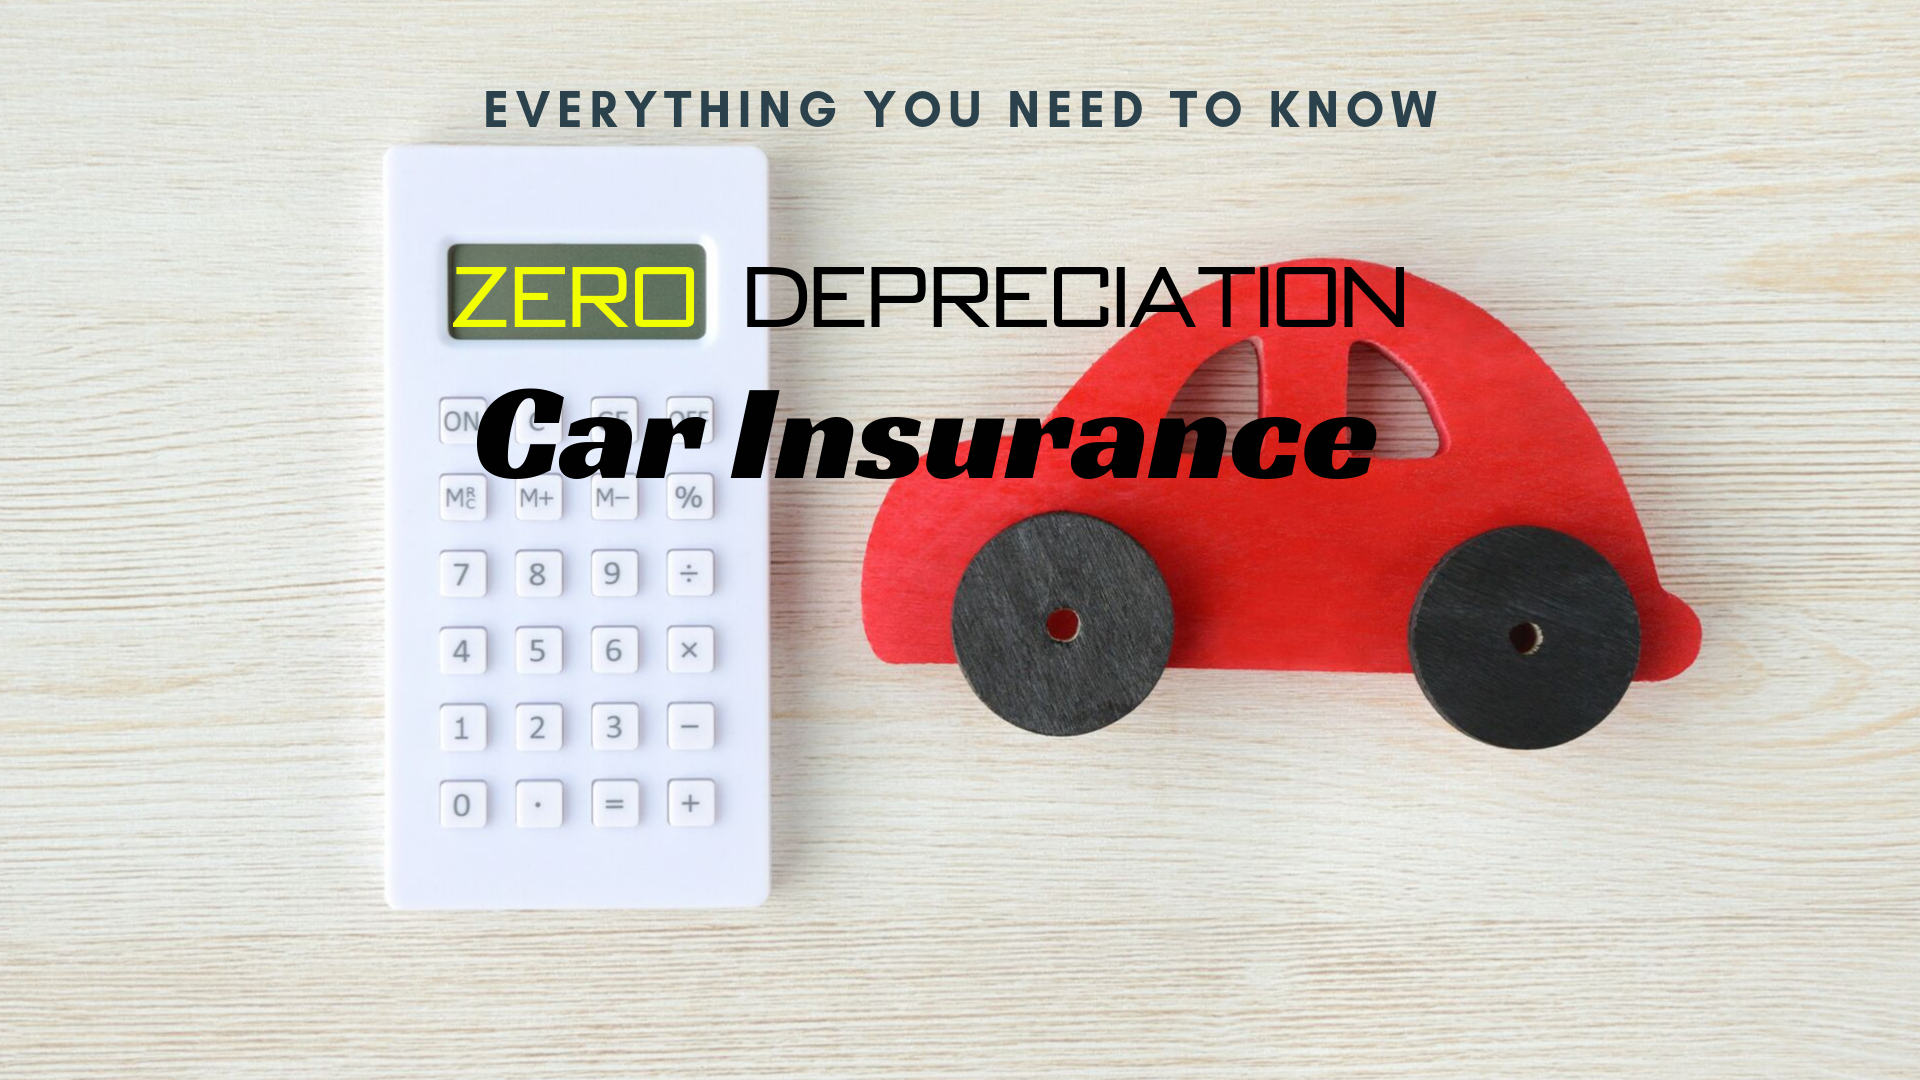 Zero Depreciation Car Insurance – Everything you need to know